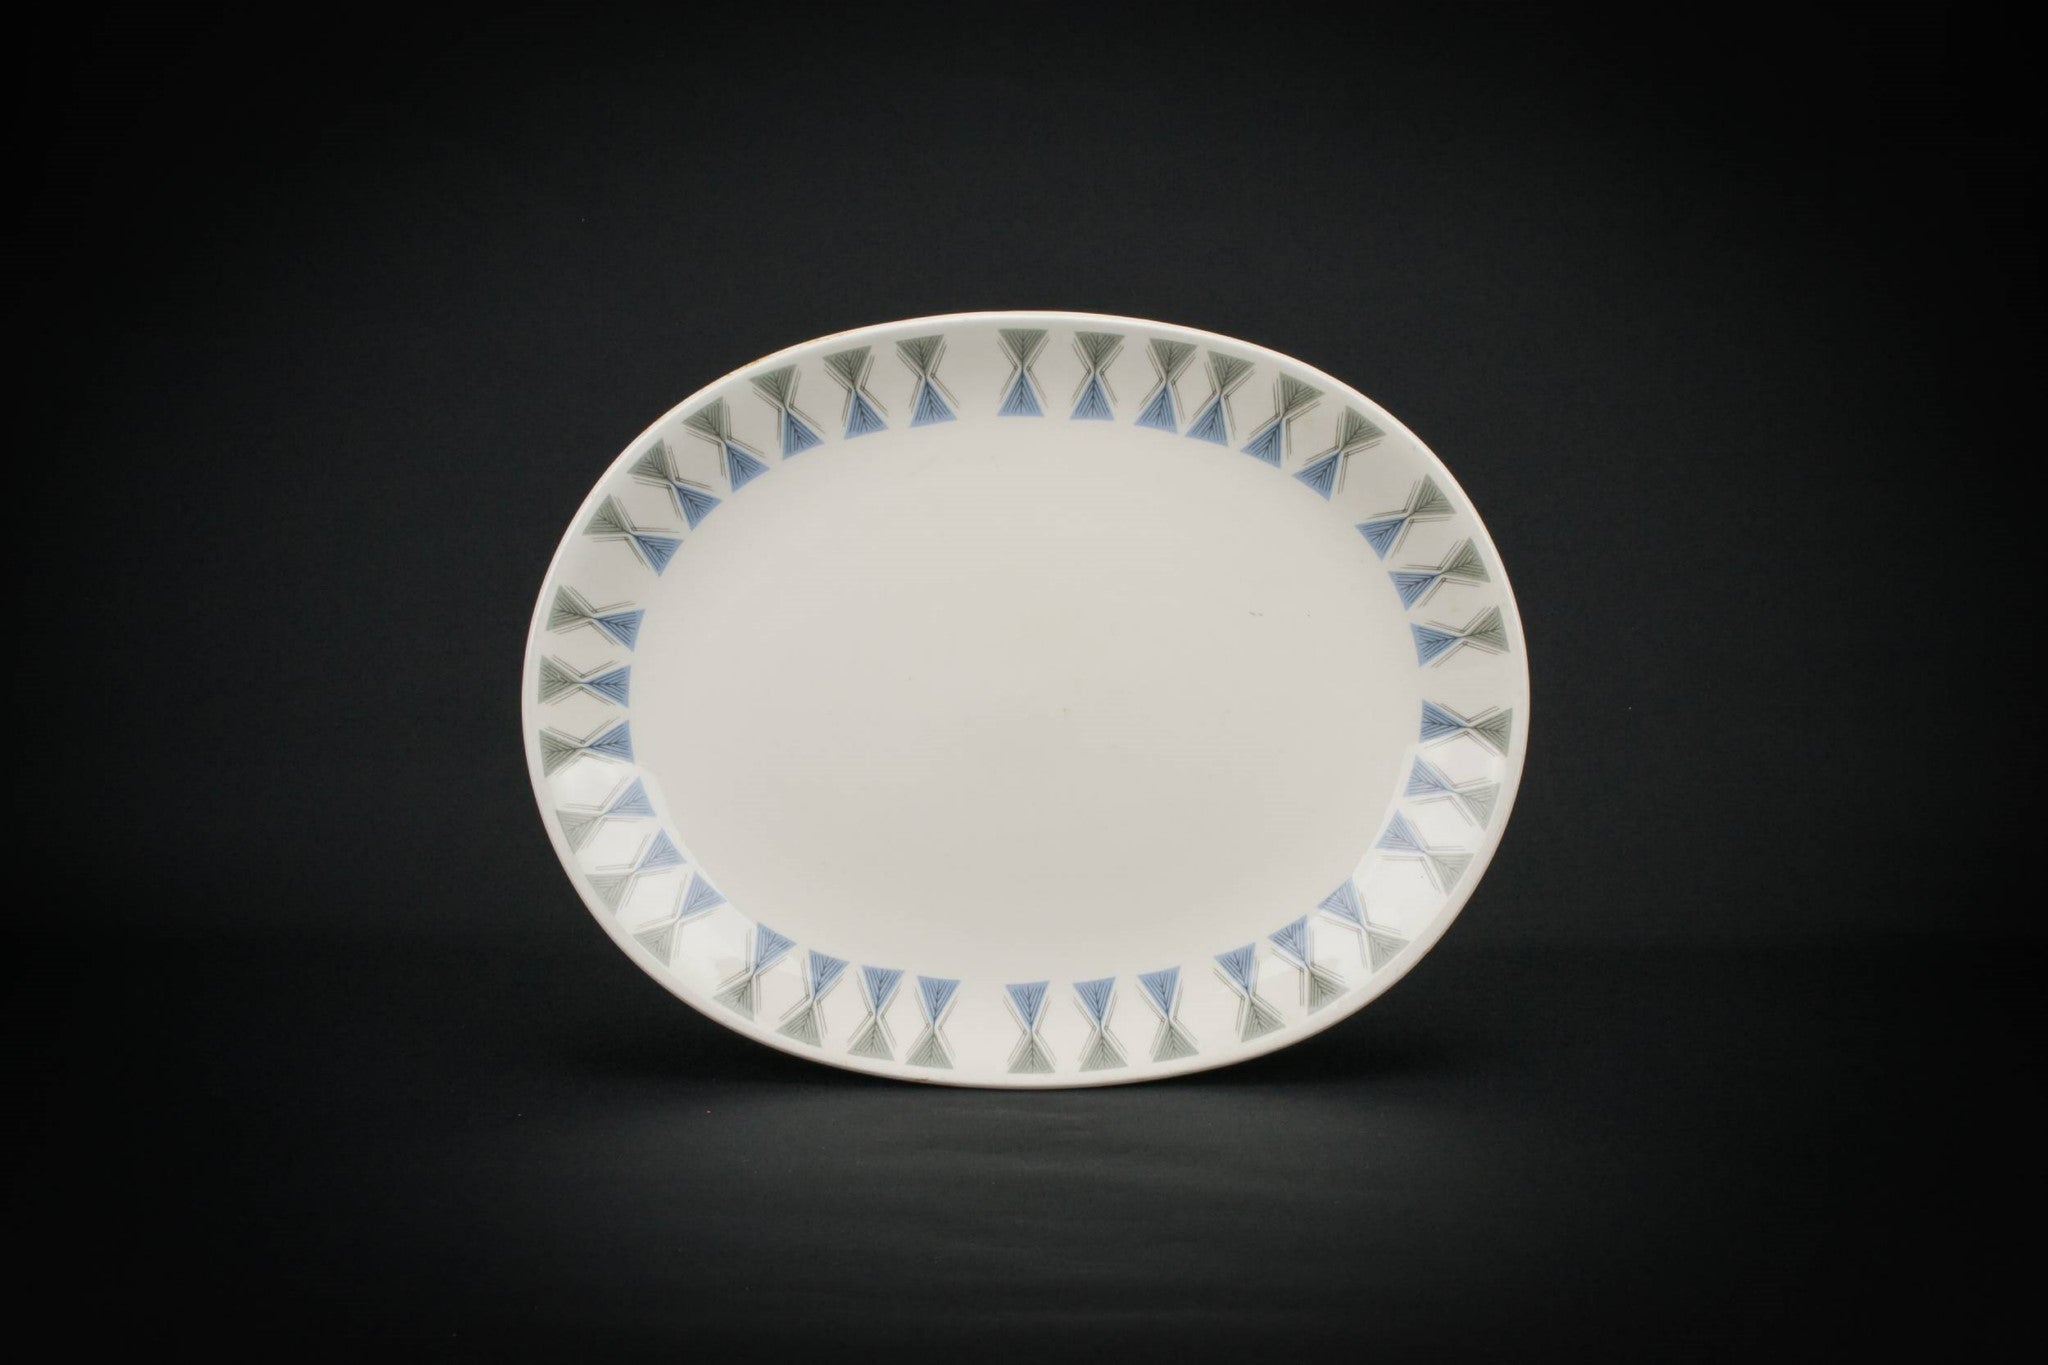 Pale blue serving platter